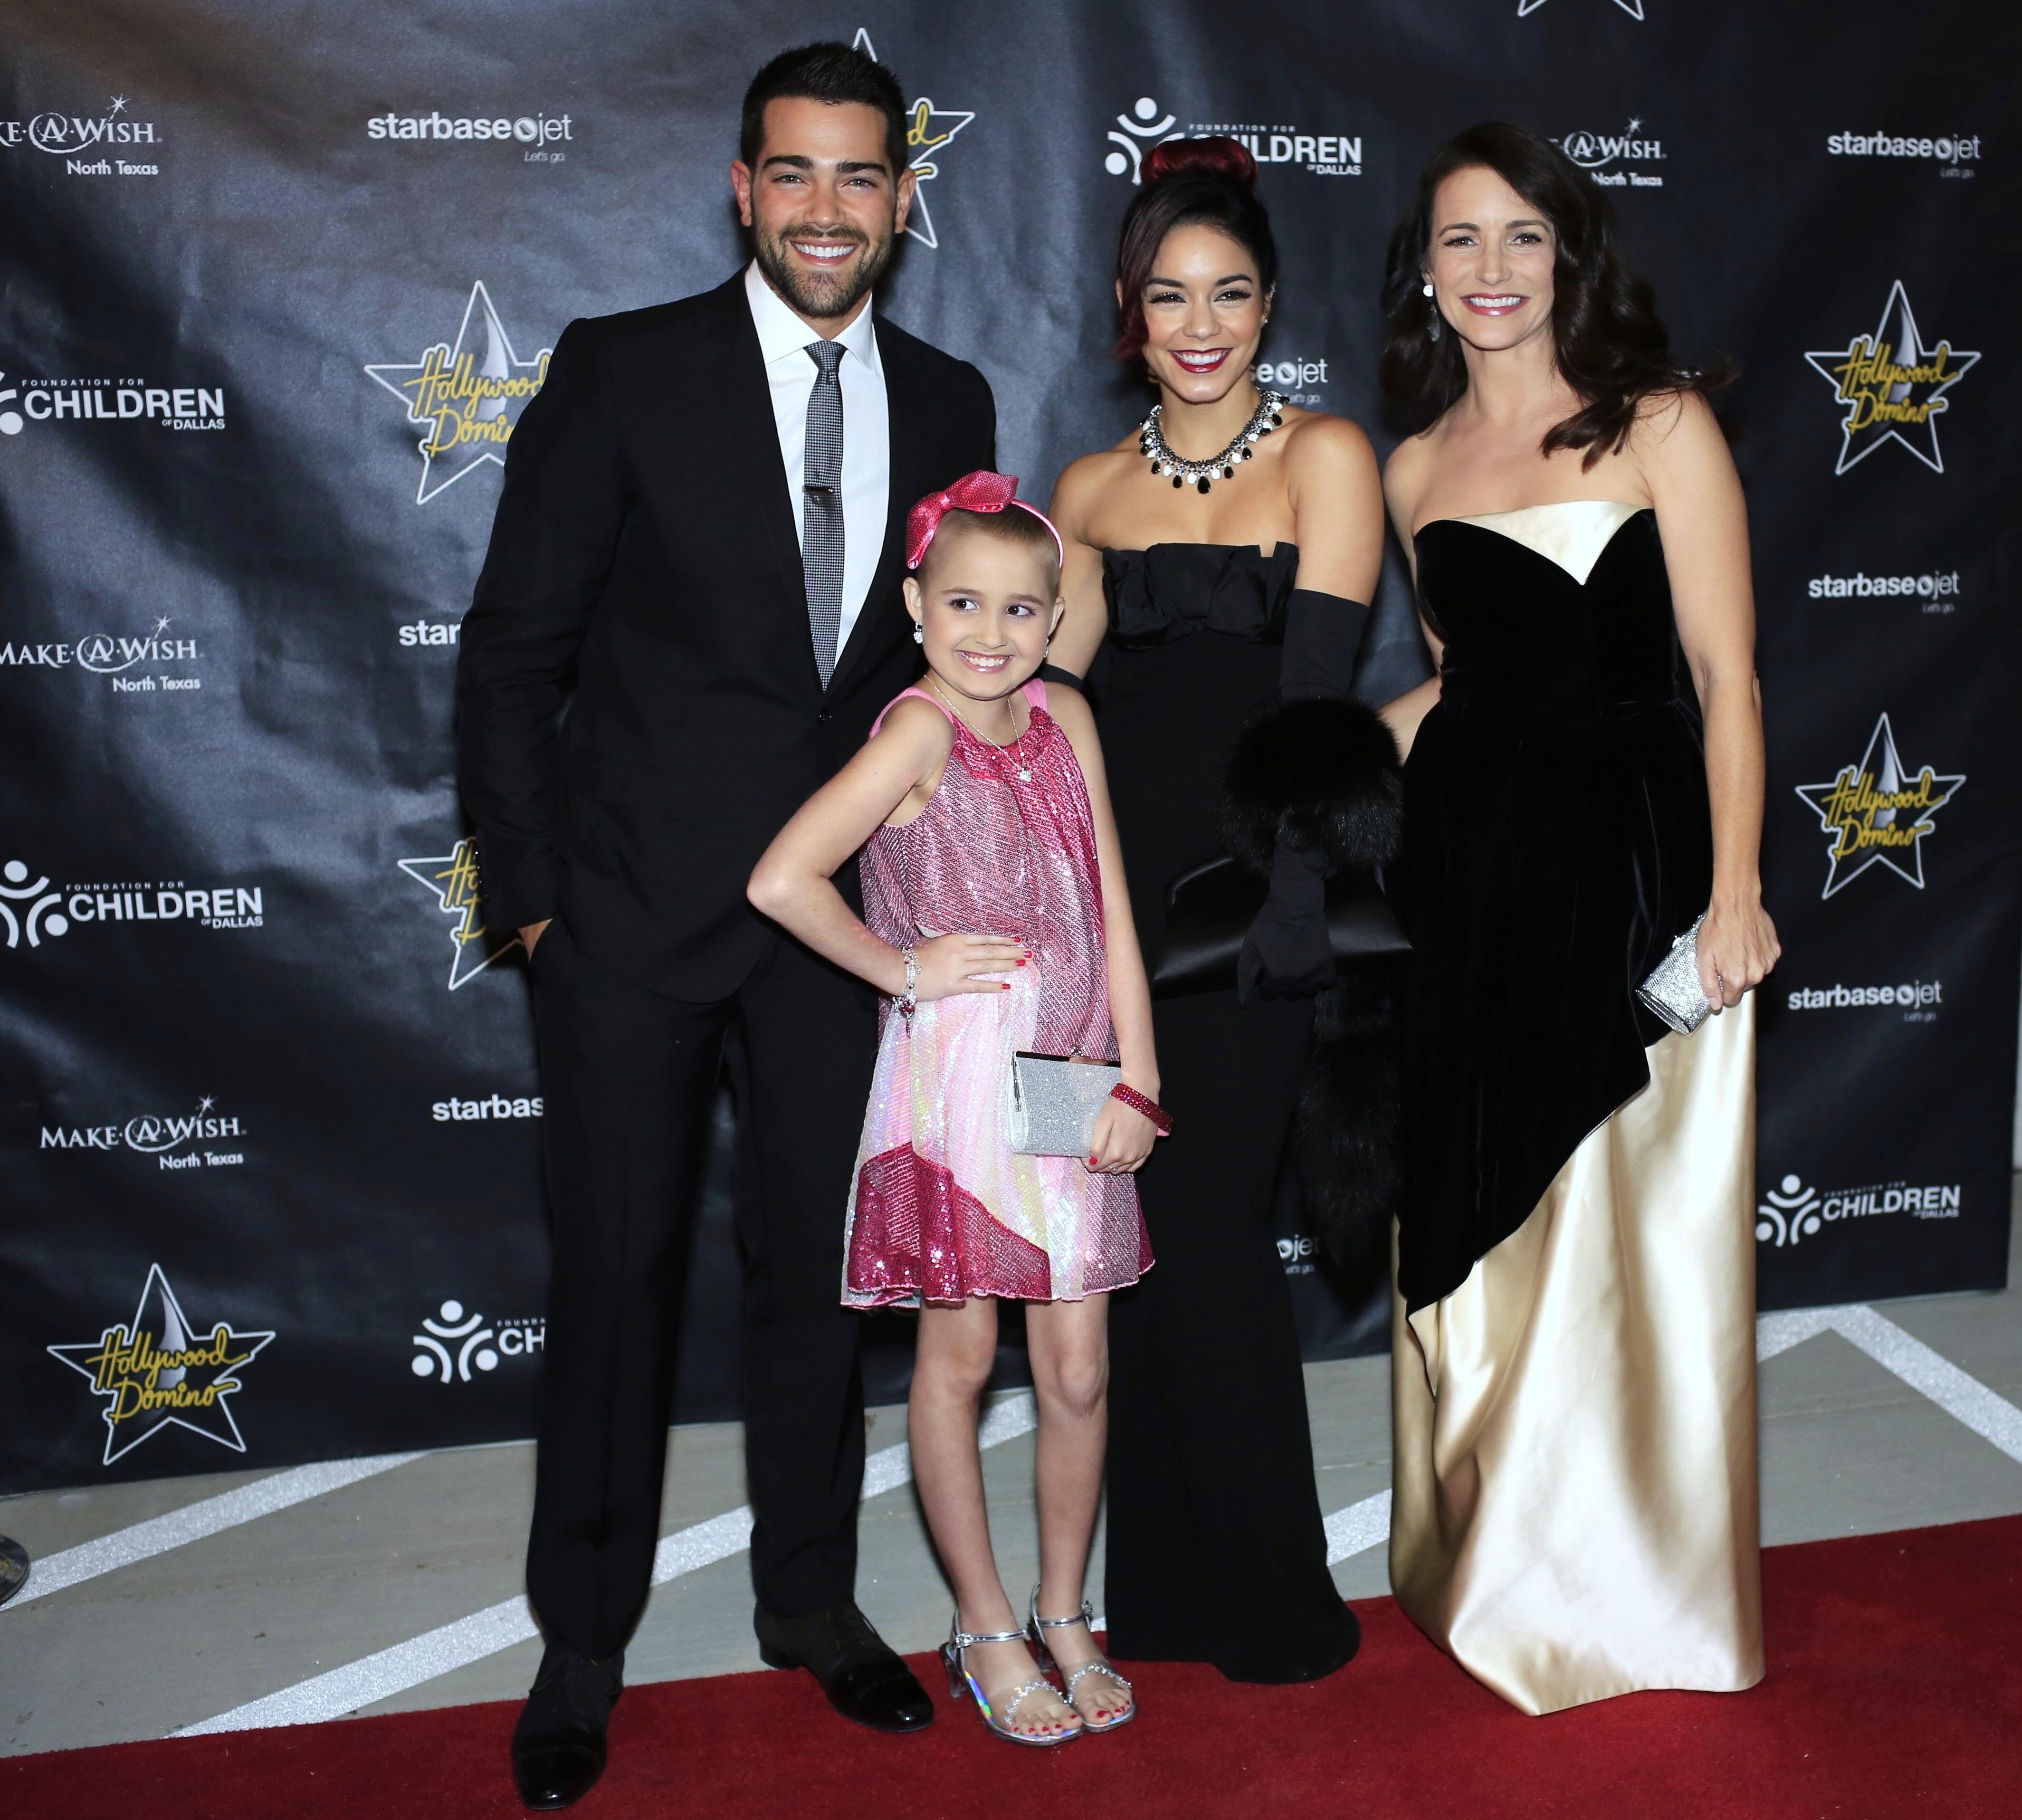 Hollywood Domino Dallas benefiting Make a Wish Foundation North Texas with Vanessa Hudgins, Kristen Davis and Jesse Metcalfe